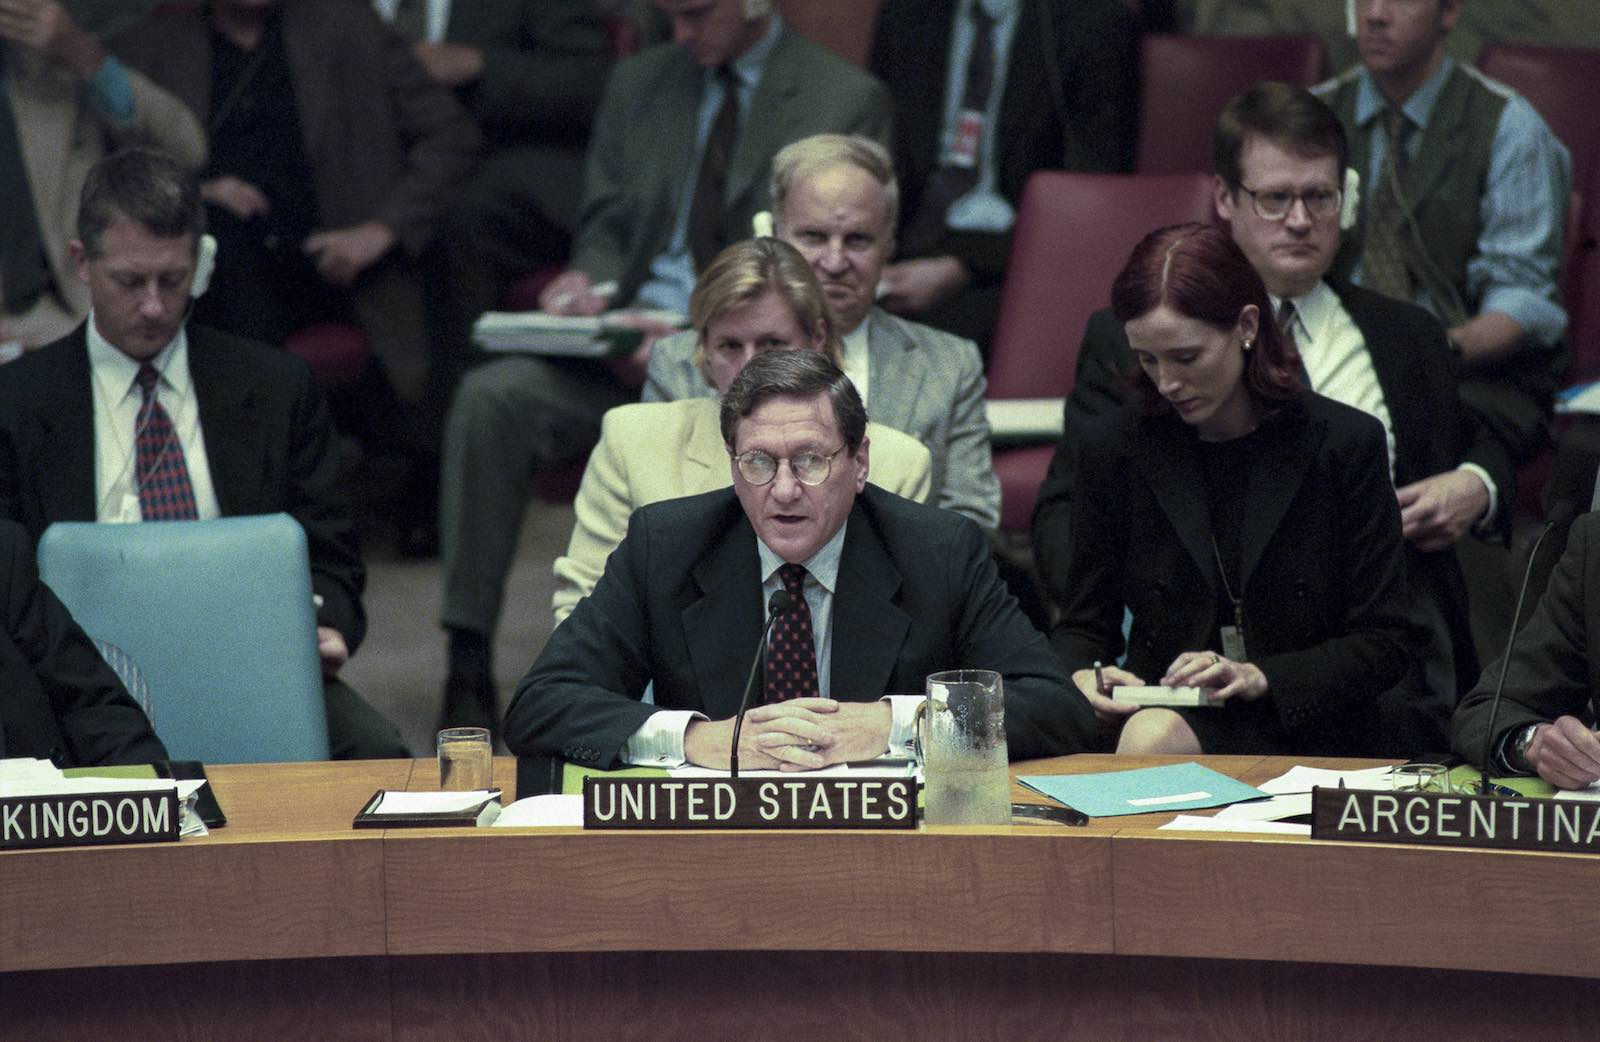 Richard Holbrooke, as Permanent Representative of the United States to the United Nations, addresses the Security Council during the 1999 East Timor crisis (Photo: Evan Schneider/UN Photo)